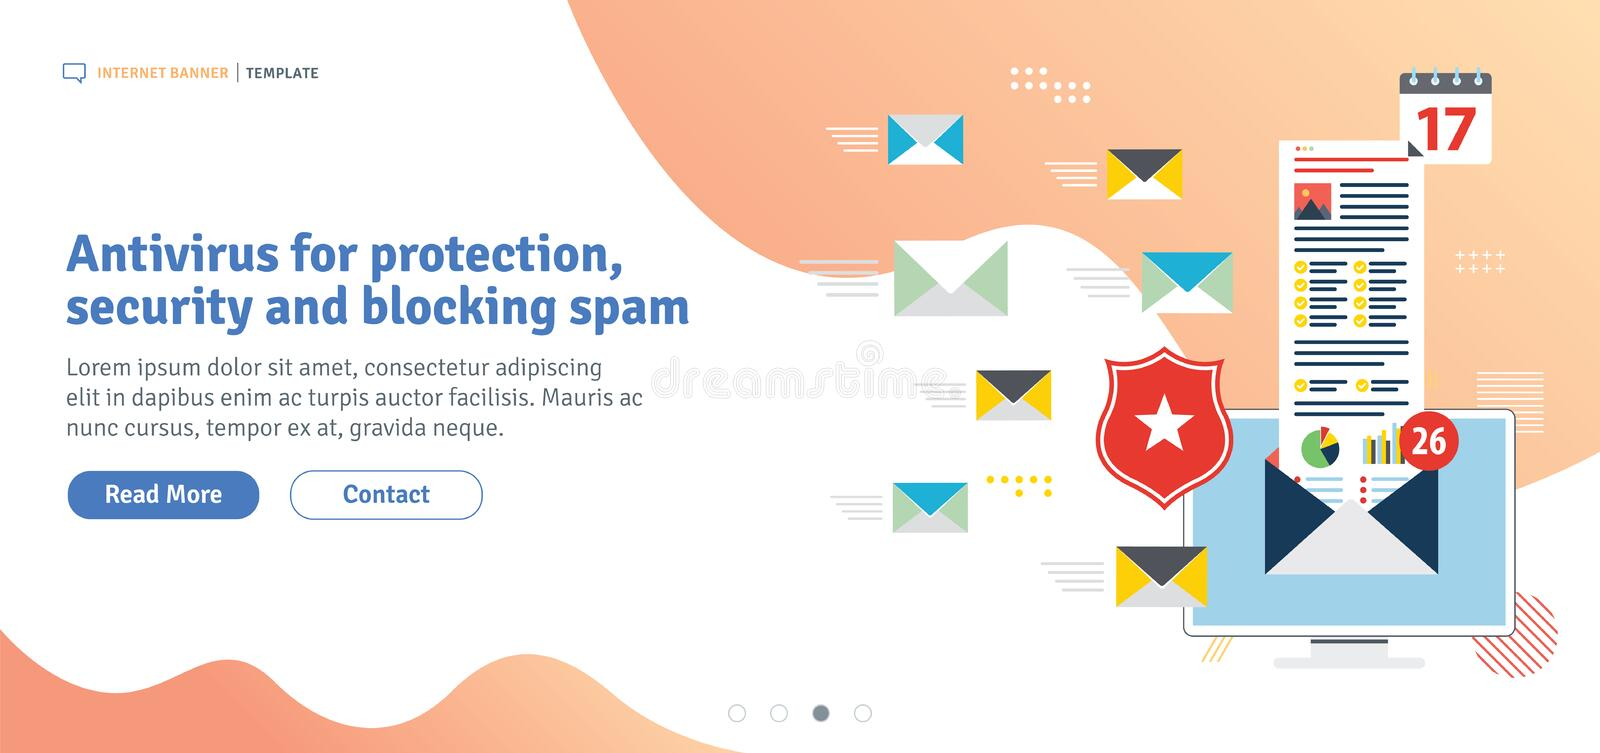 Antivirus for protection, security and blocking spam. Protect of privacy, virus and phishing. Template in flat design for web banner or infographic in vector stock illustration